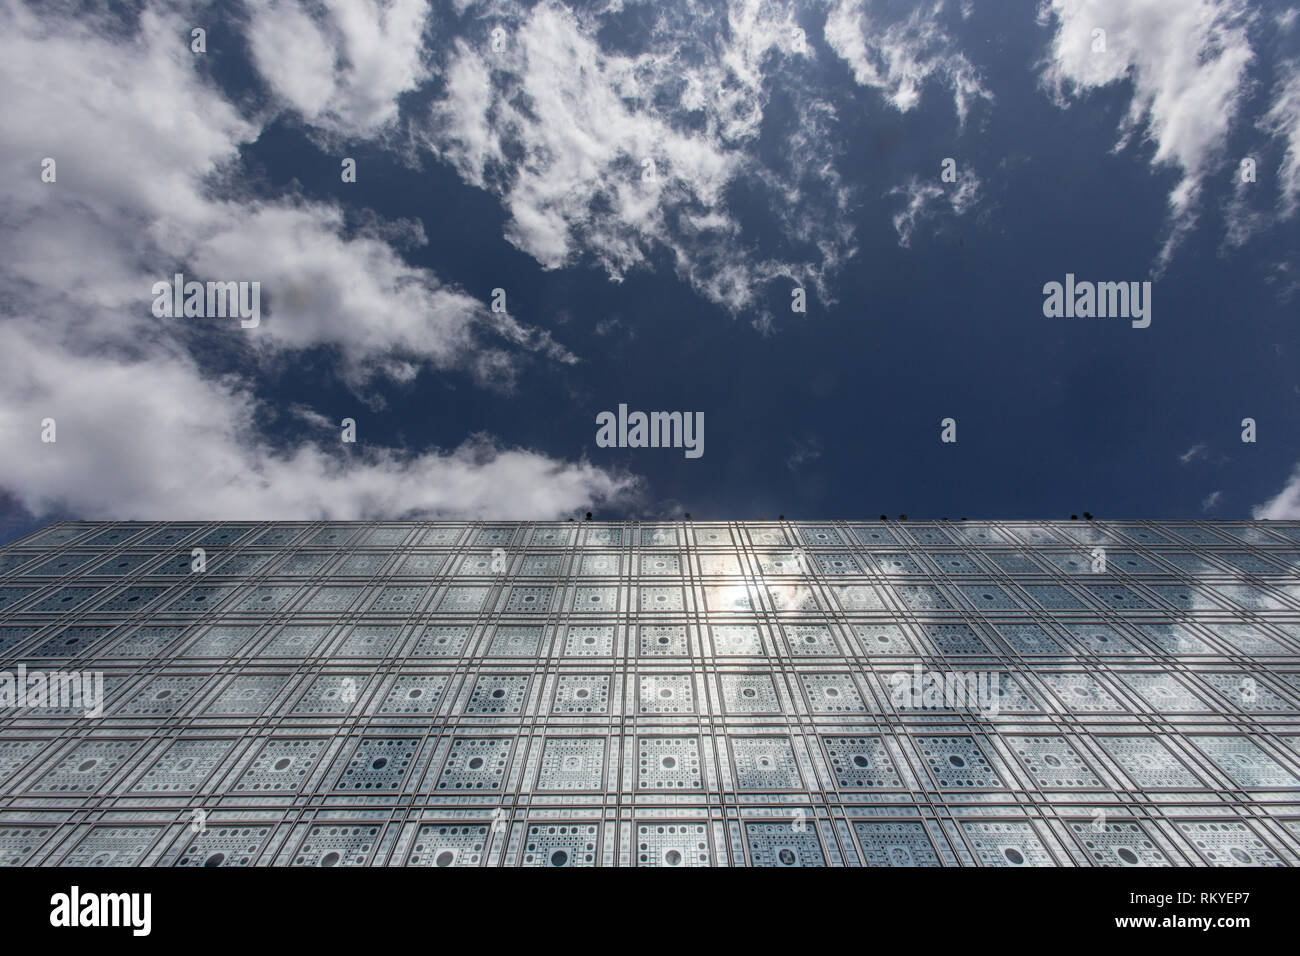 The Arab World Institute designed by Jean Nouvel - Stock Image